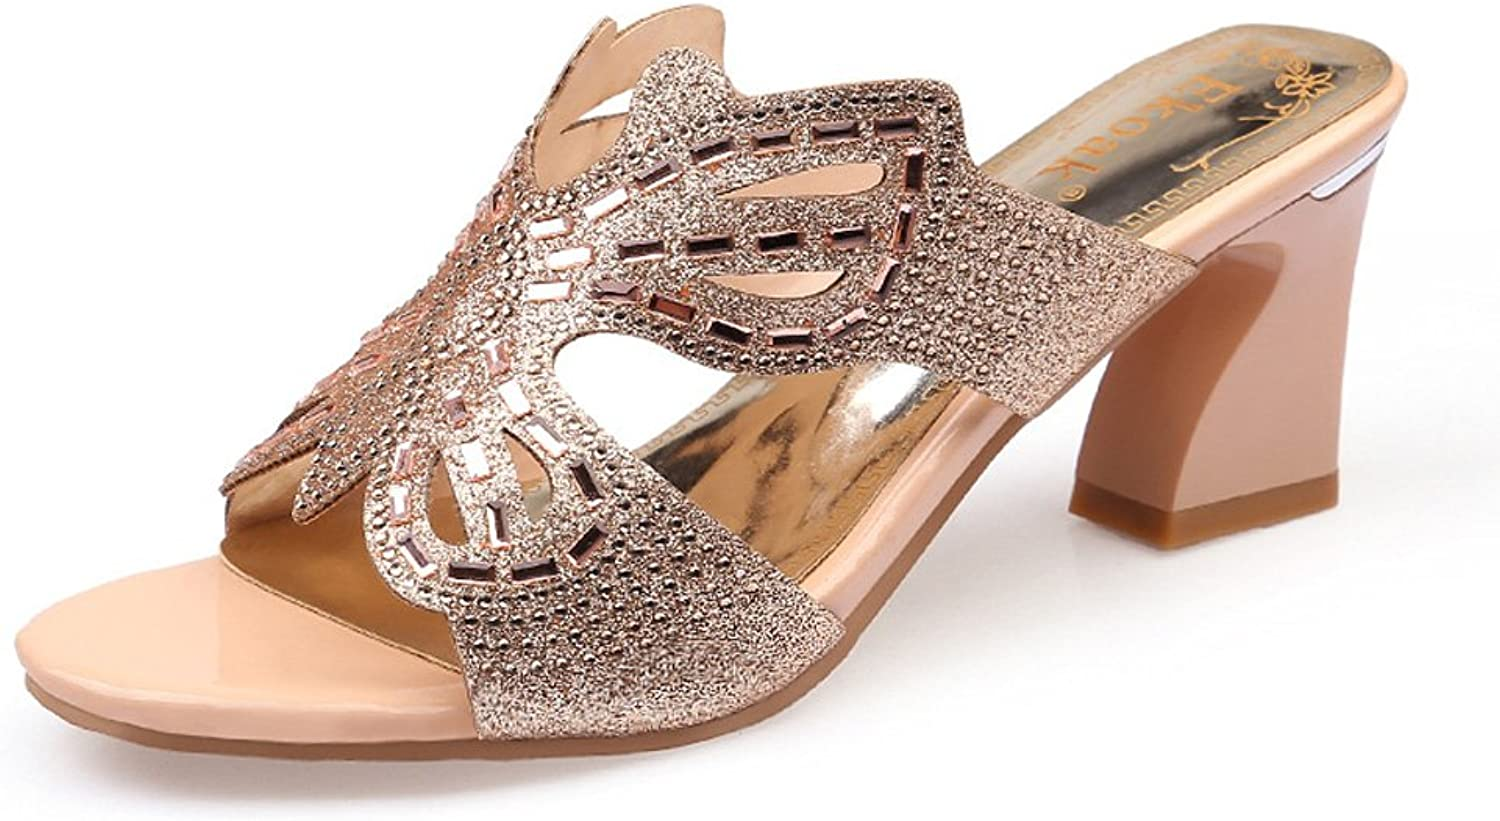 GenePeg Women's Chunky Heeled Sandals Slip-On Crystal Sexy Butterfly Slides Party shoes